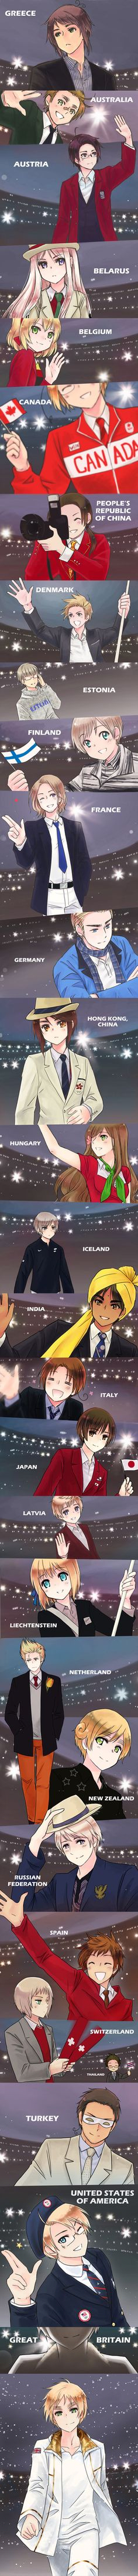 Hetalia-Olympic Parade   ERMAHGERD THEY DIDN'T FORGET HONG KONG AND INDIA AND ALL THE OTHERS THEY DIDN'T FORGET! AND BRITAIN LOOKS SO AMAZING!! ;u;